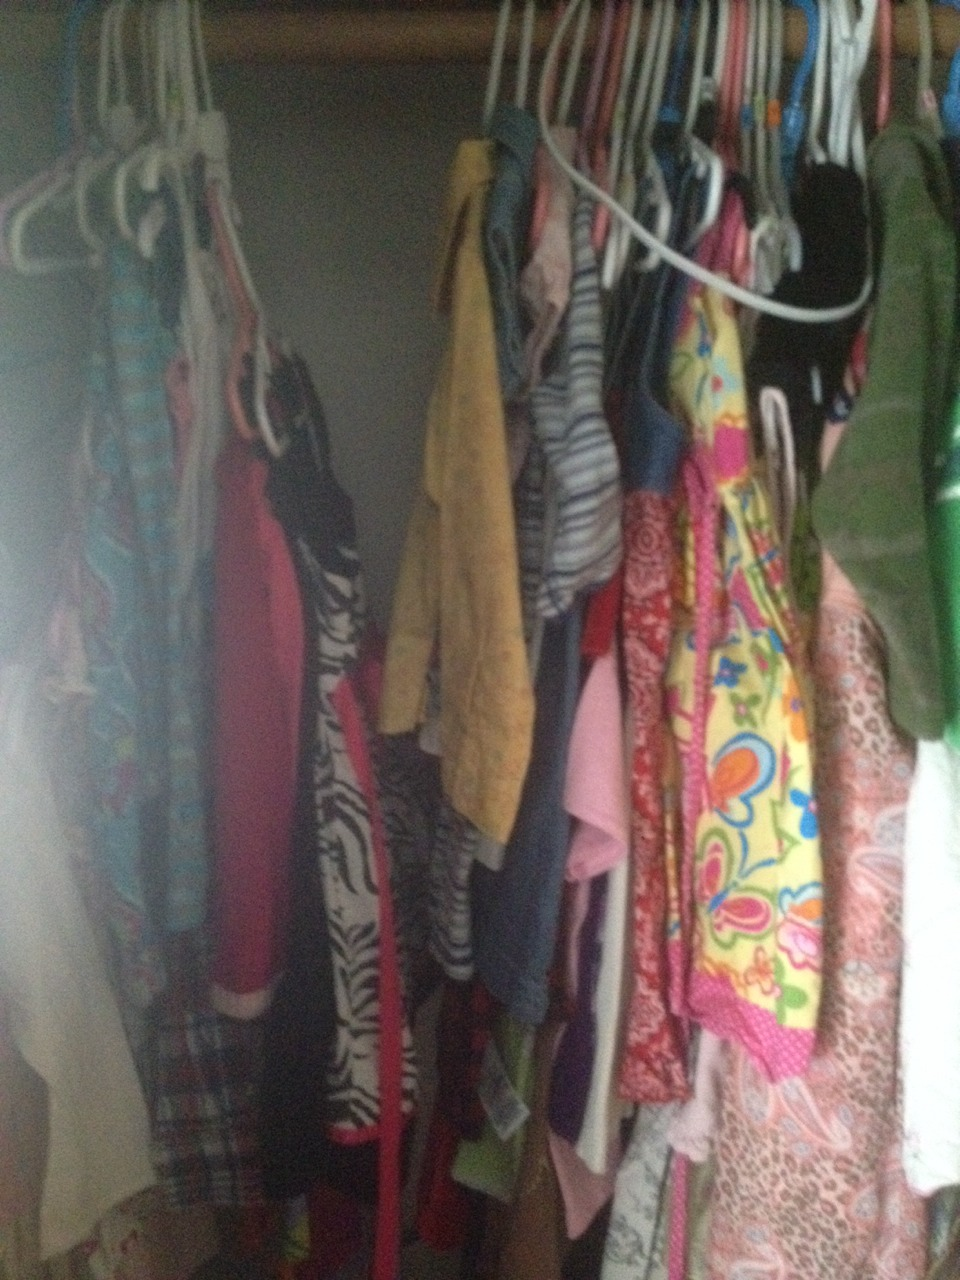 When done the hangers swing right back into the closet